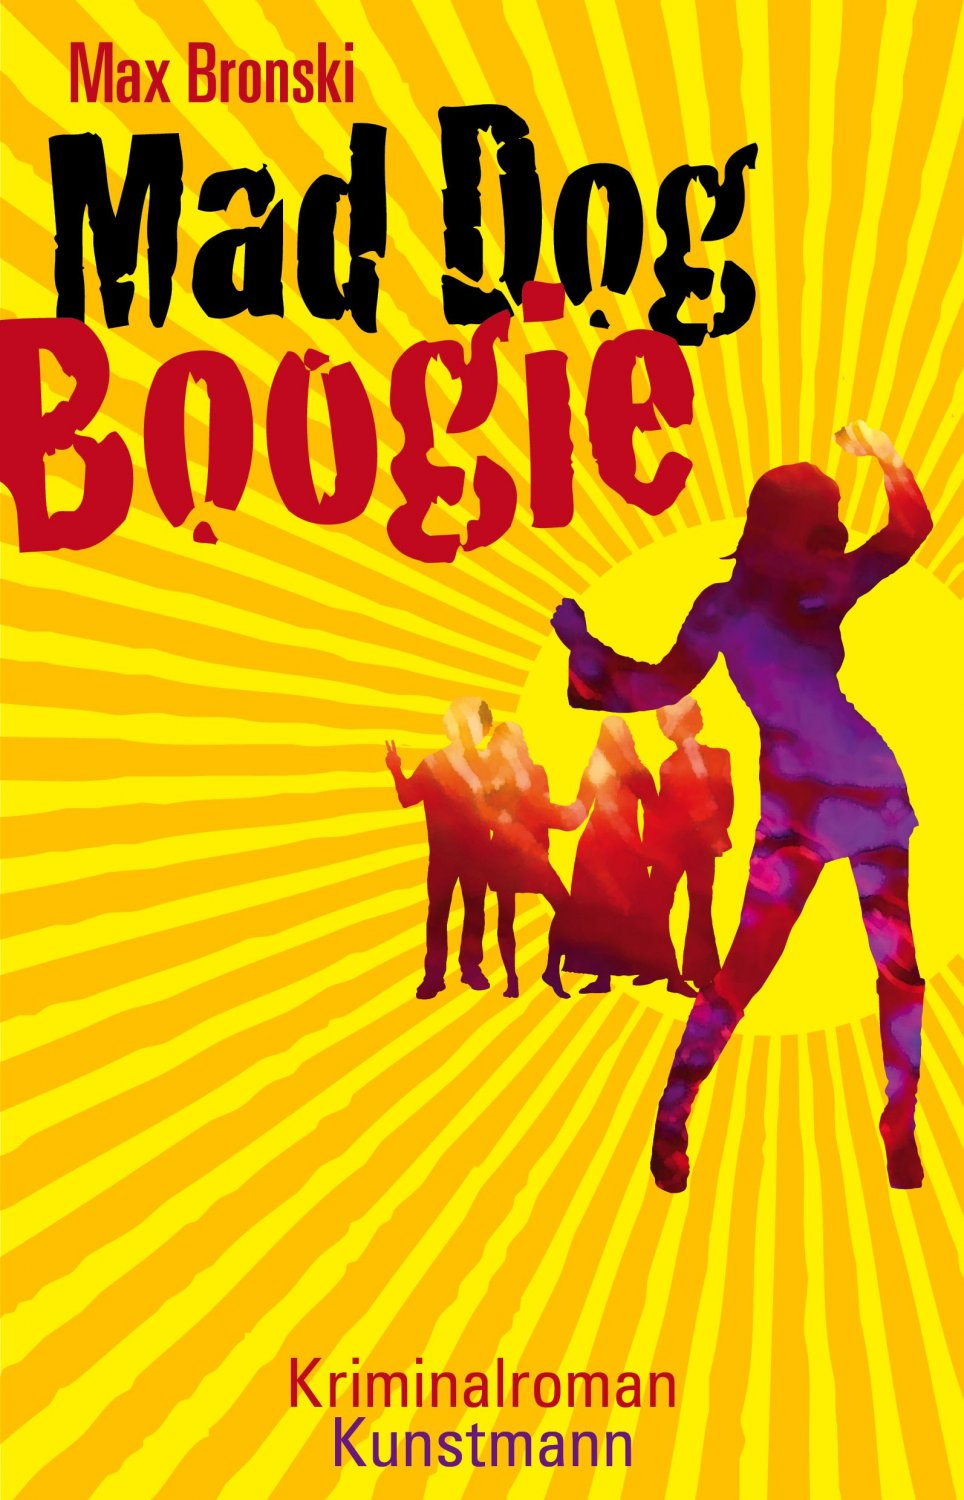 Bronski_Maddogboogie_cover